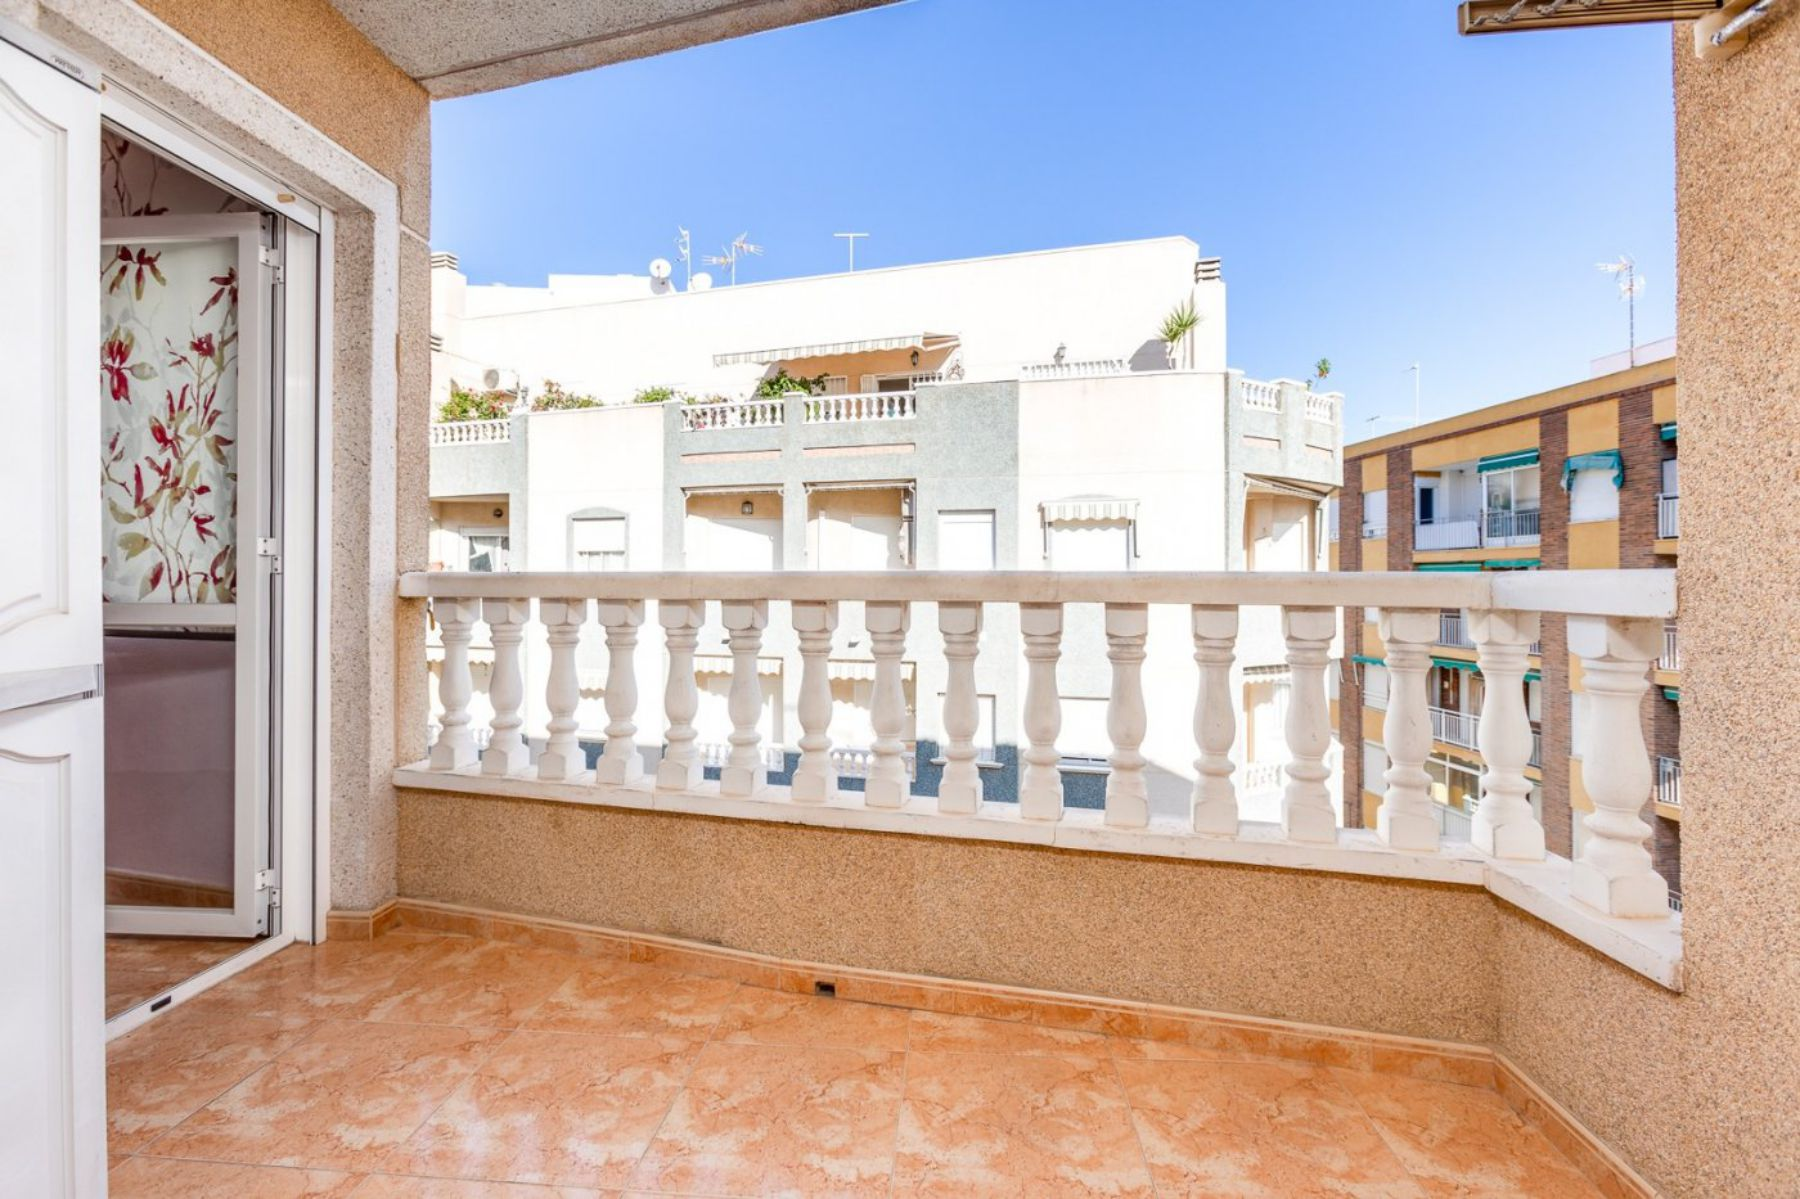 2 Bedrooms Apartment For Sale with Large Terrace in El Cura Beach - Torrevieja